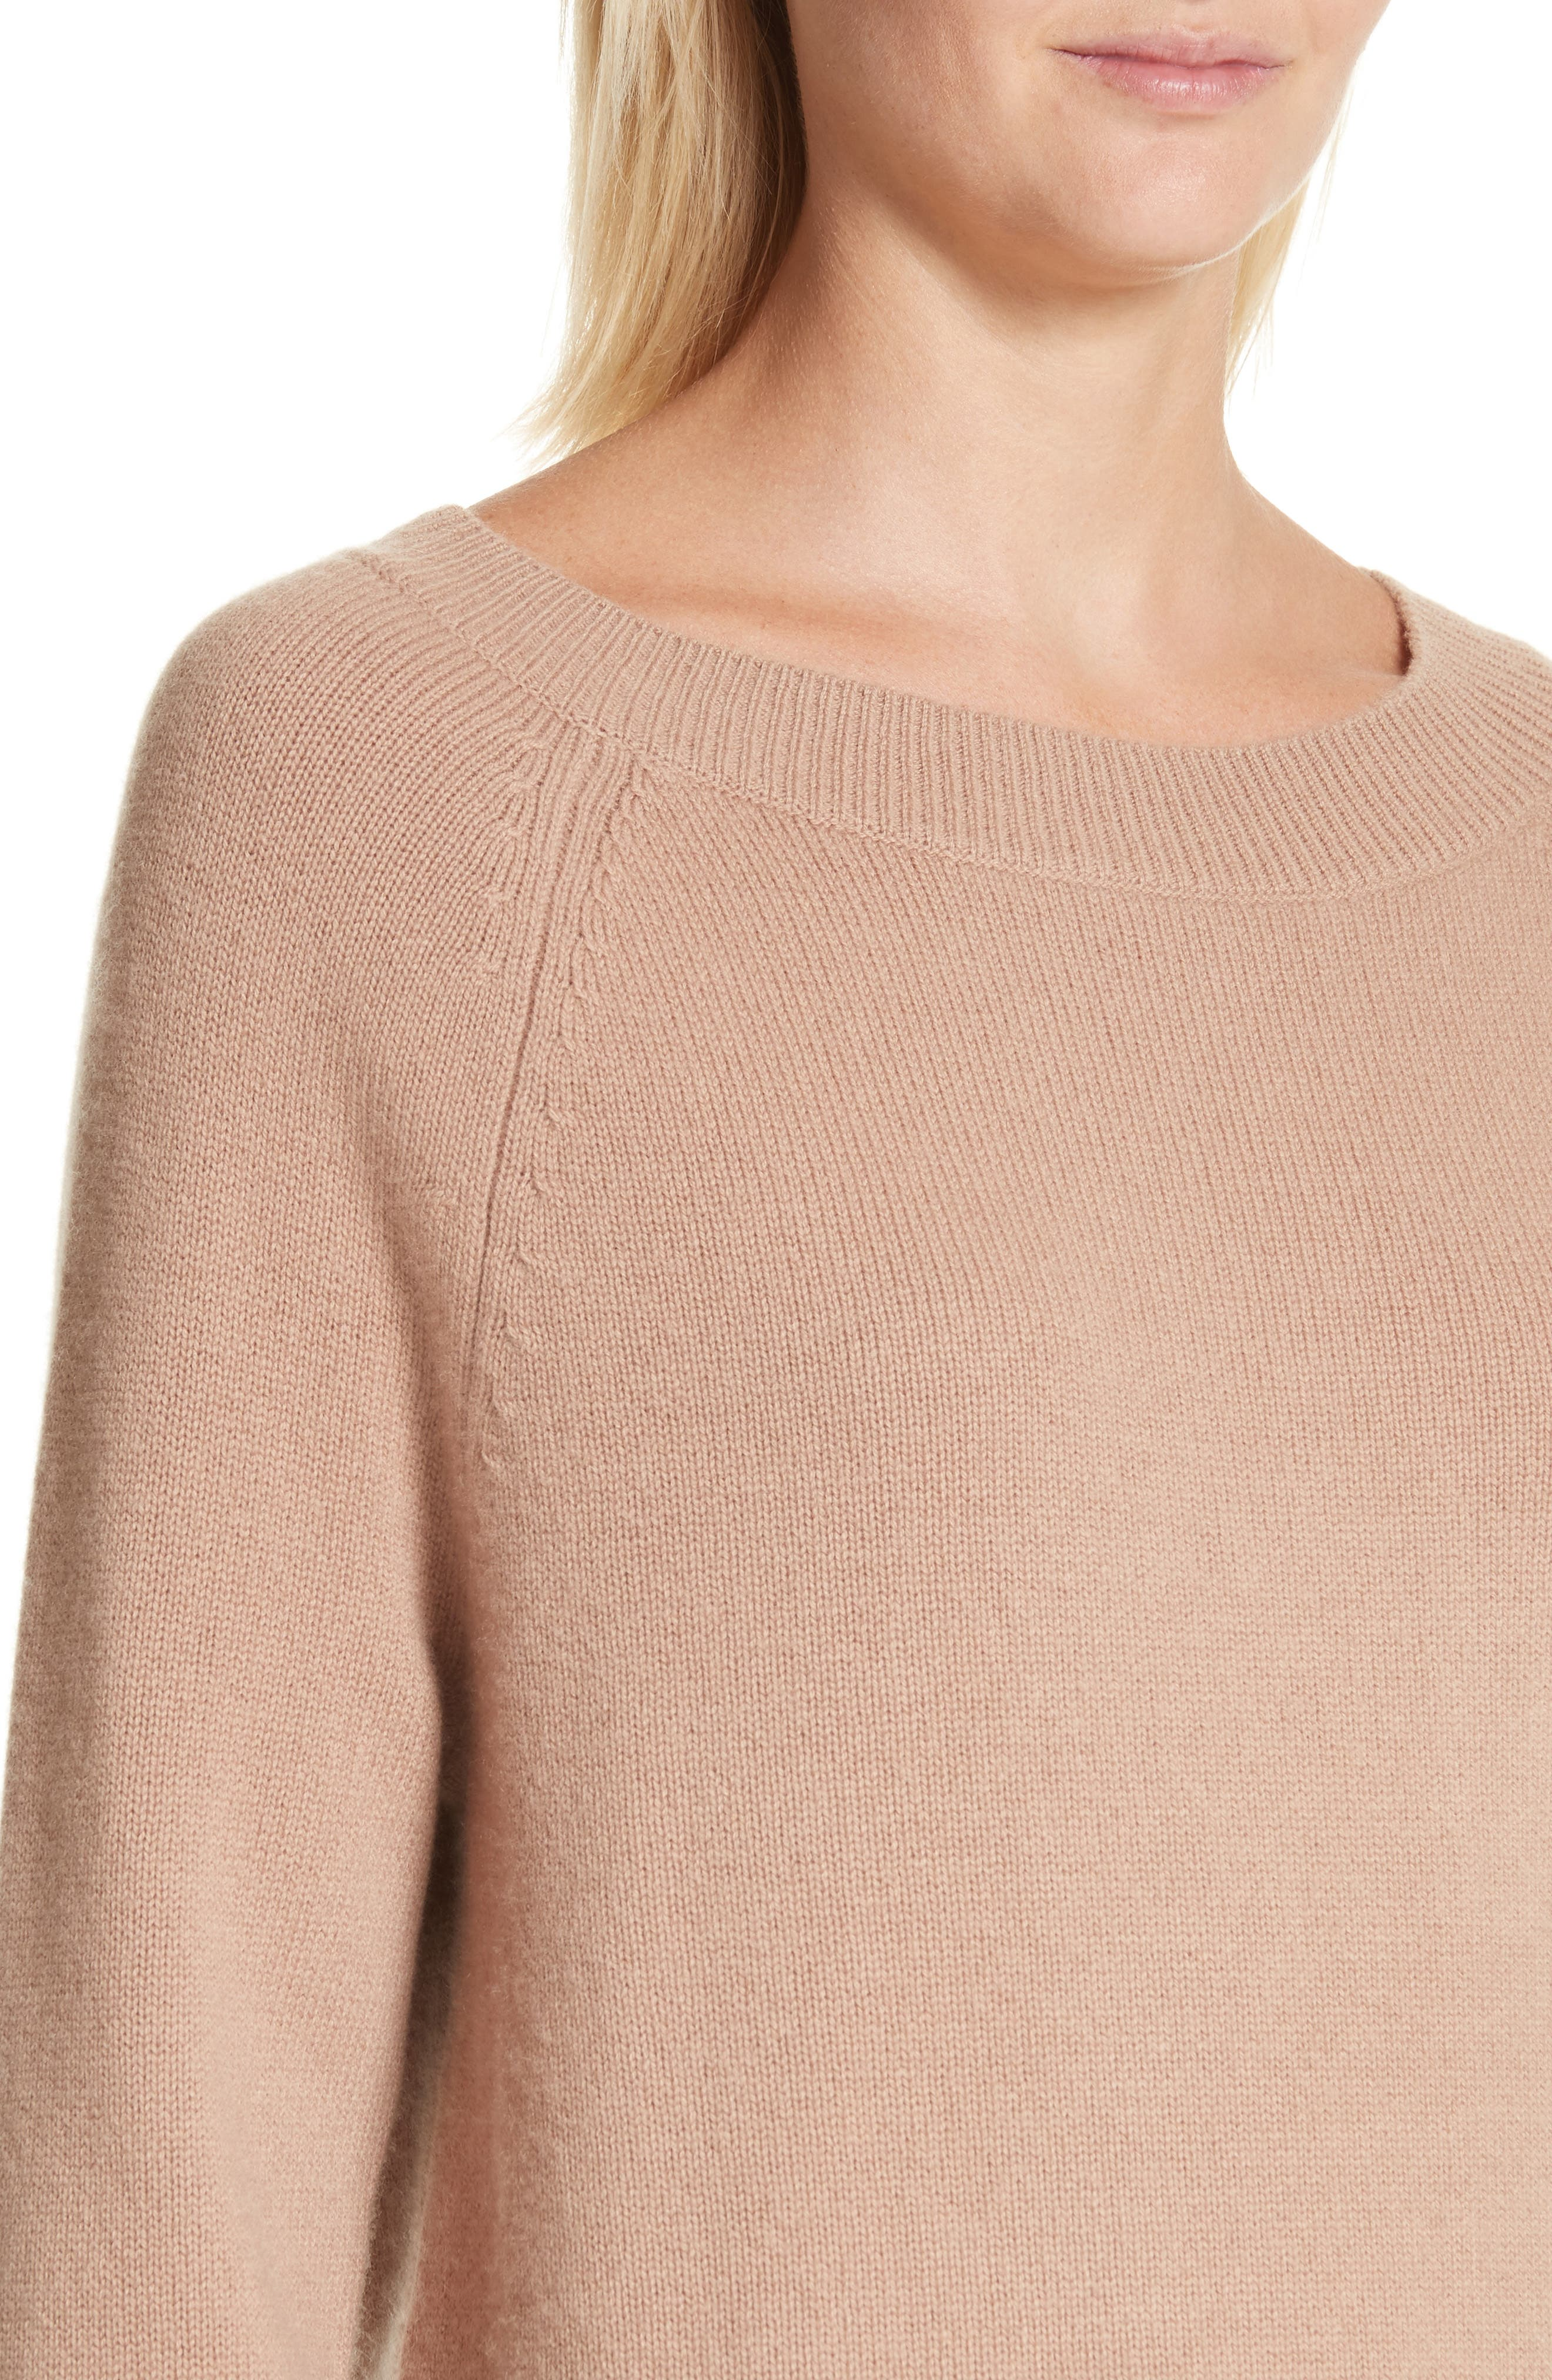 Cody Wool & Cashmere Boatneck Sweater,                             Alternate thumbnail 4, color,                             200